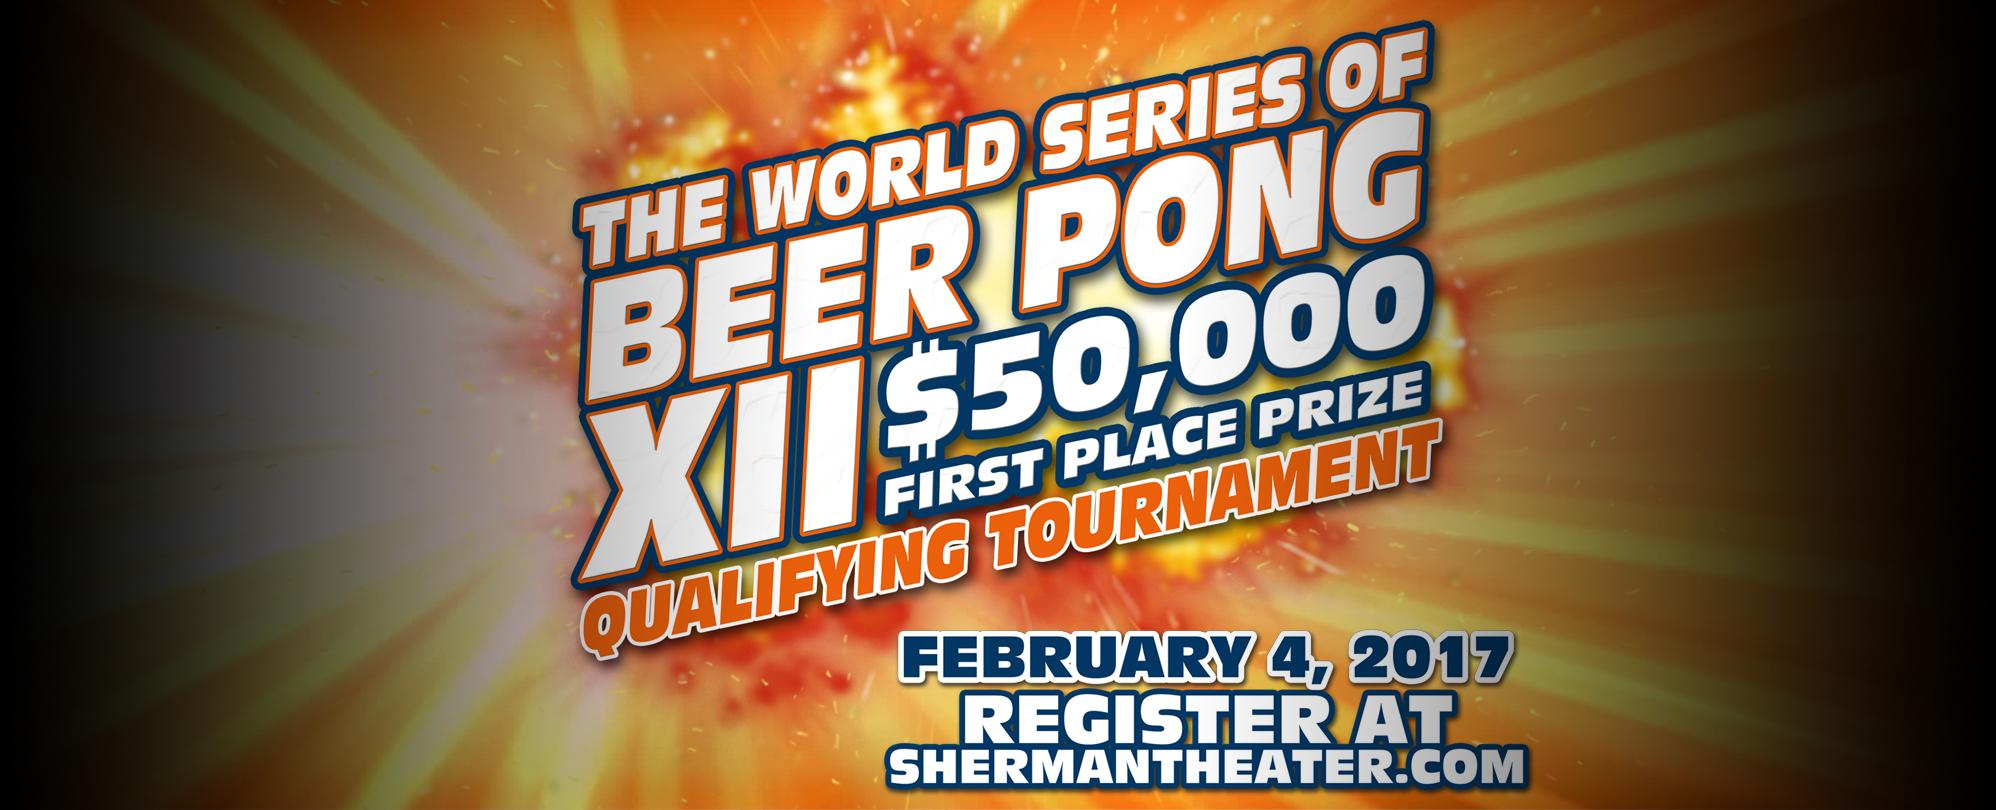 World Series Of Beer Pong - Qualifying Tournament